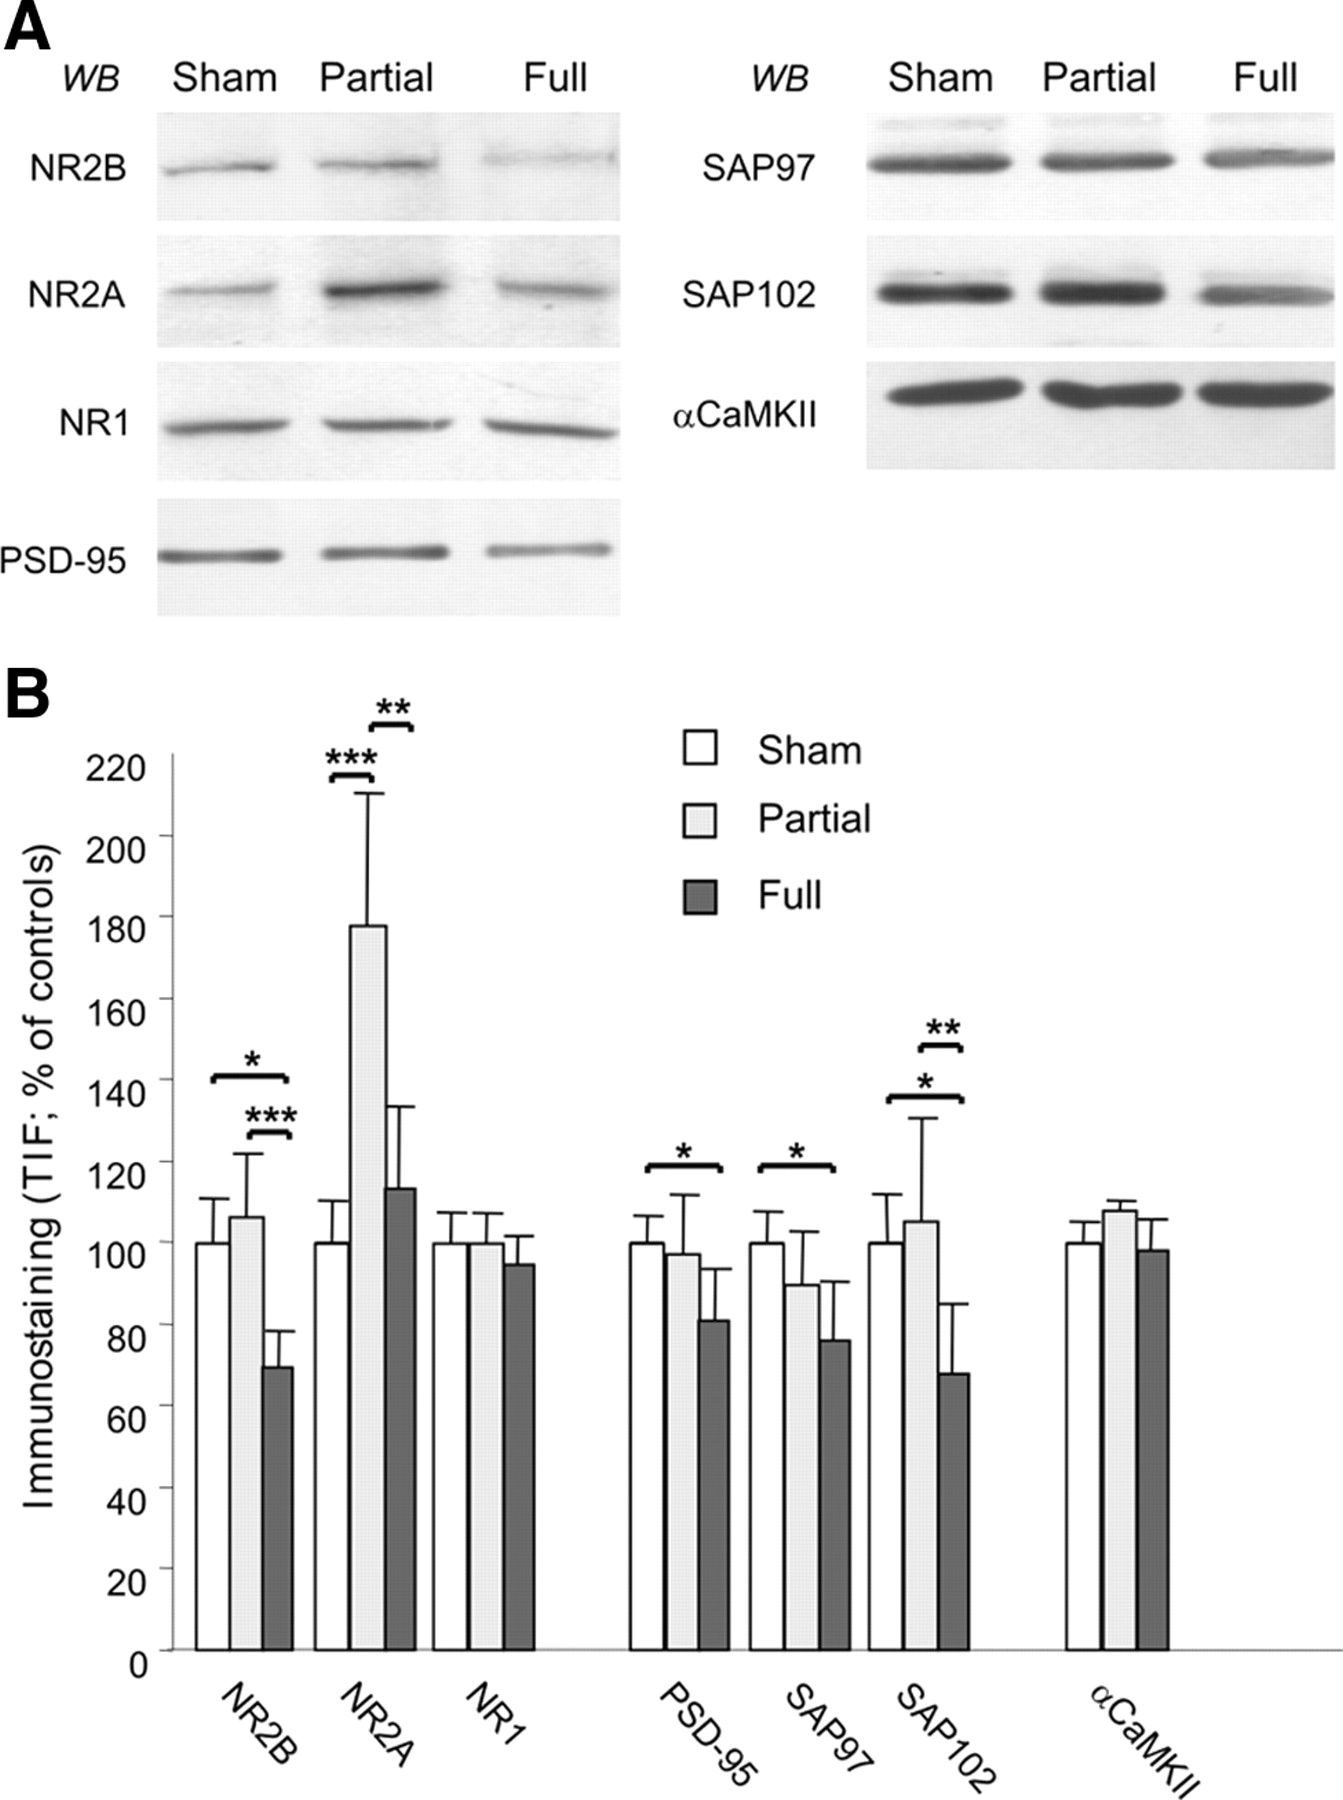 according to figure 9.14, phosphate groups play a key role in receptor kinase activation by: